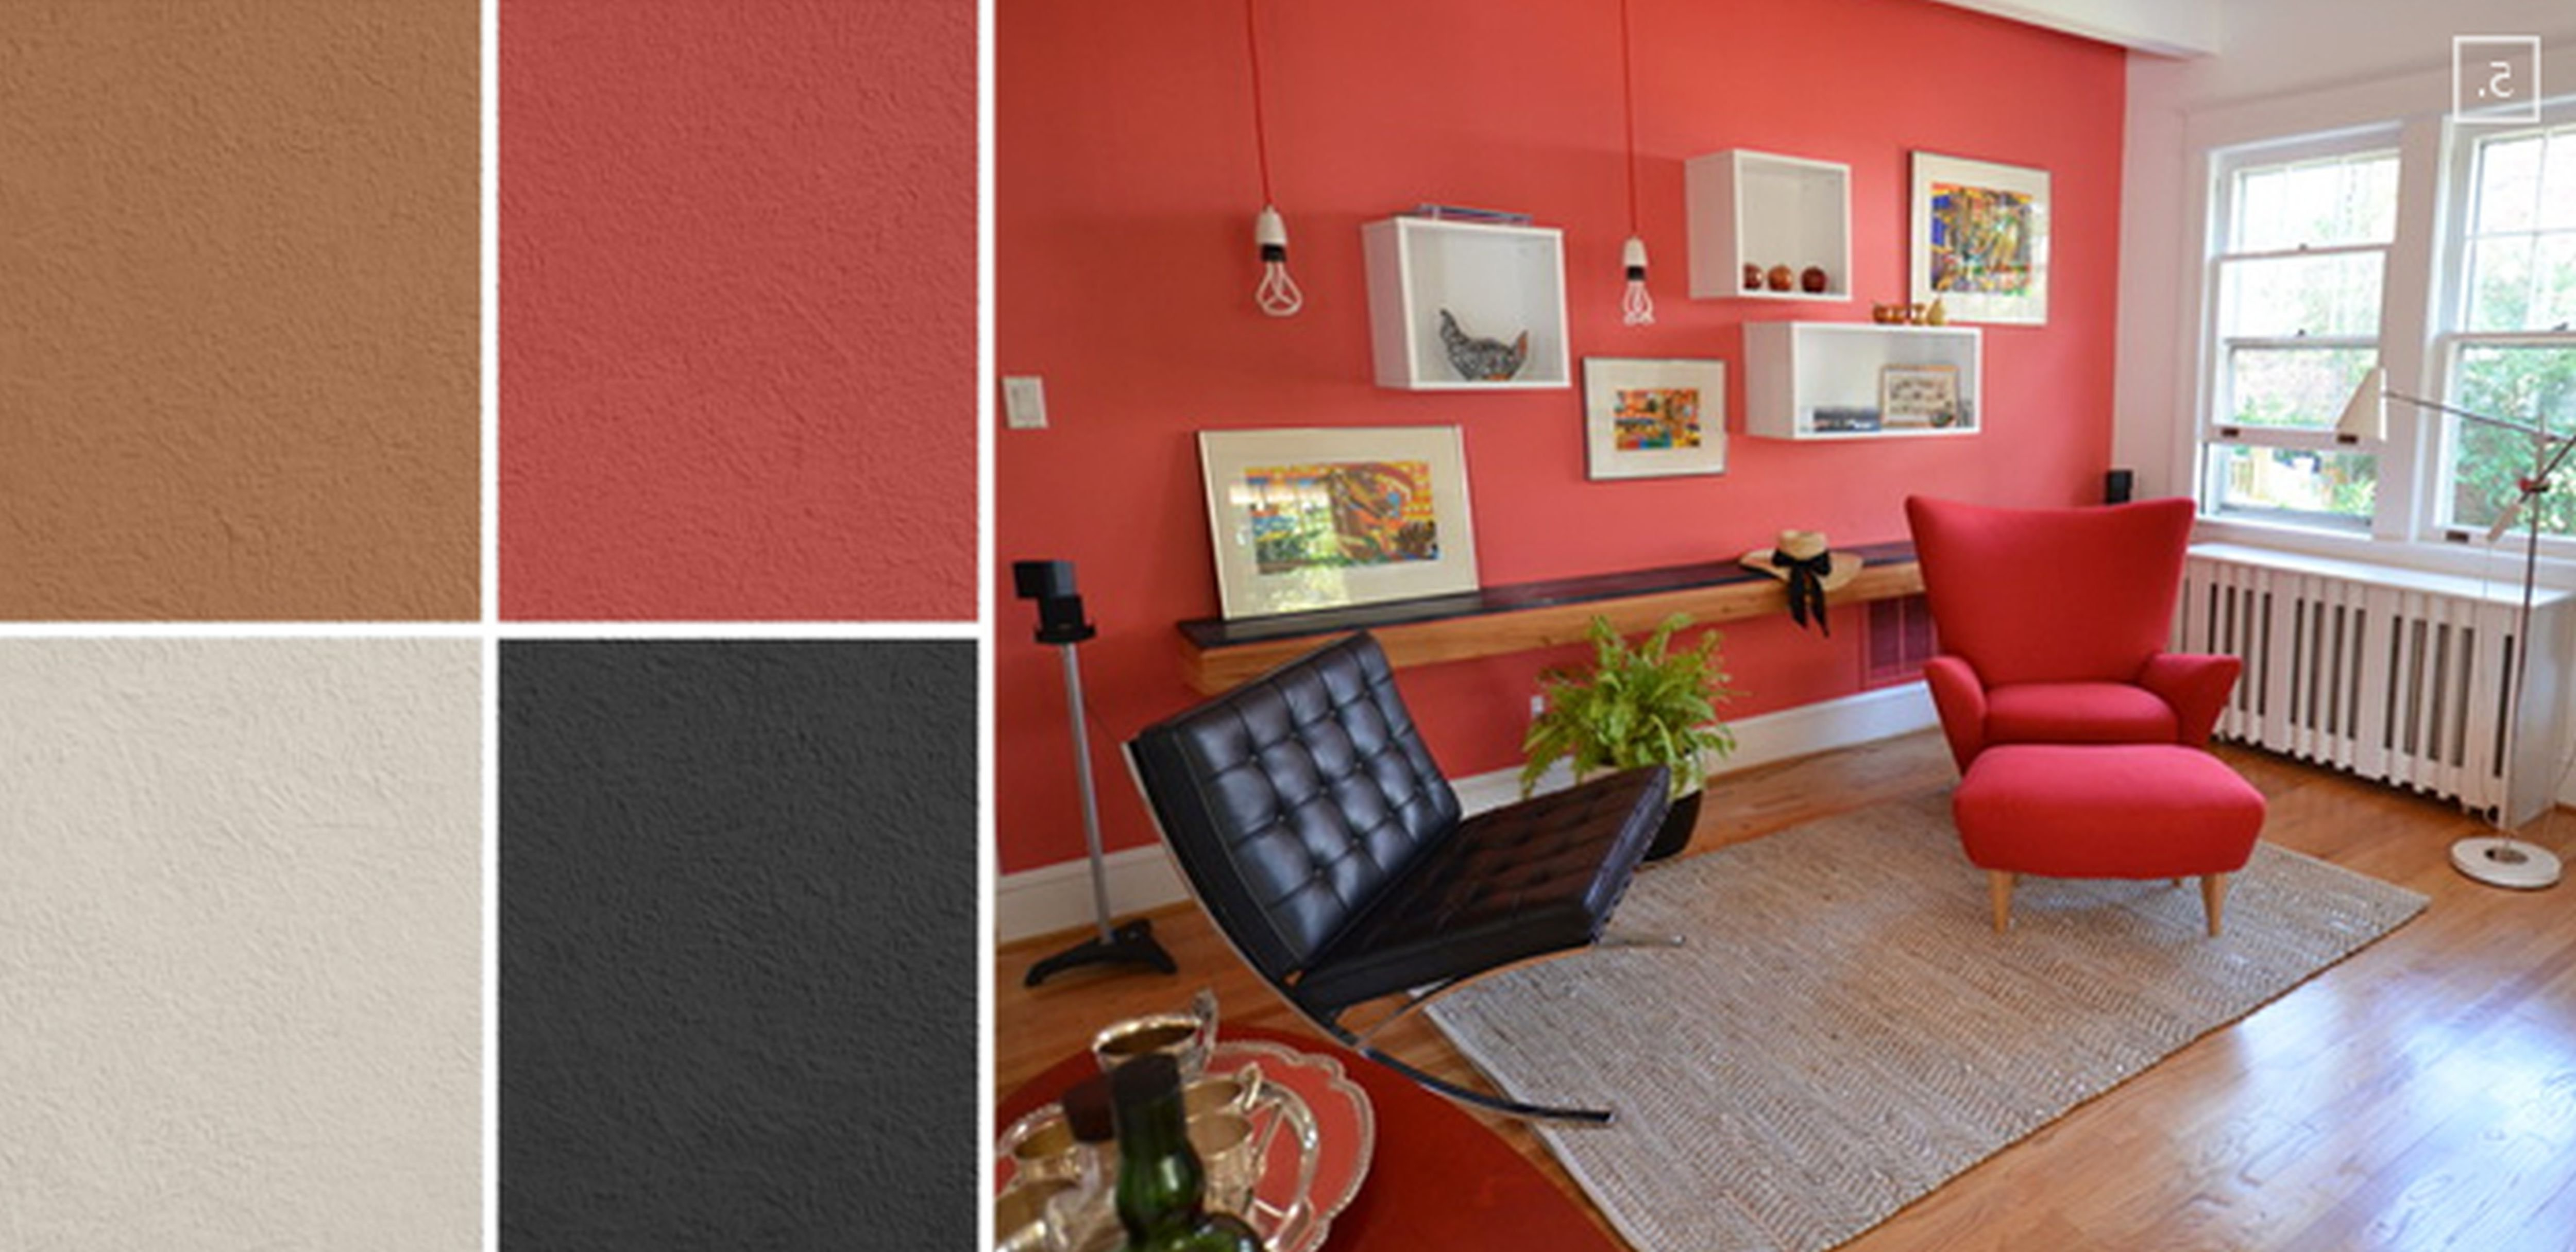 wall paint colors matching photo - 10